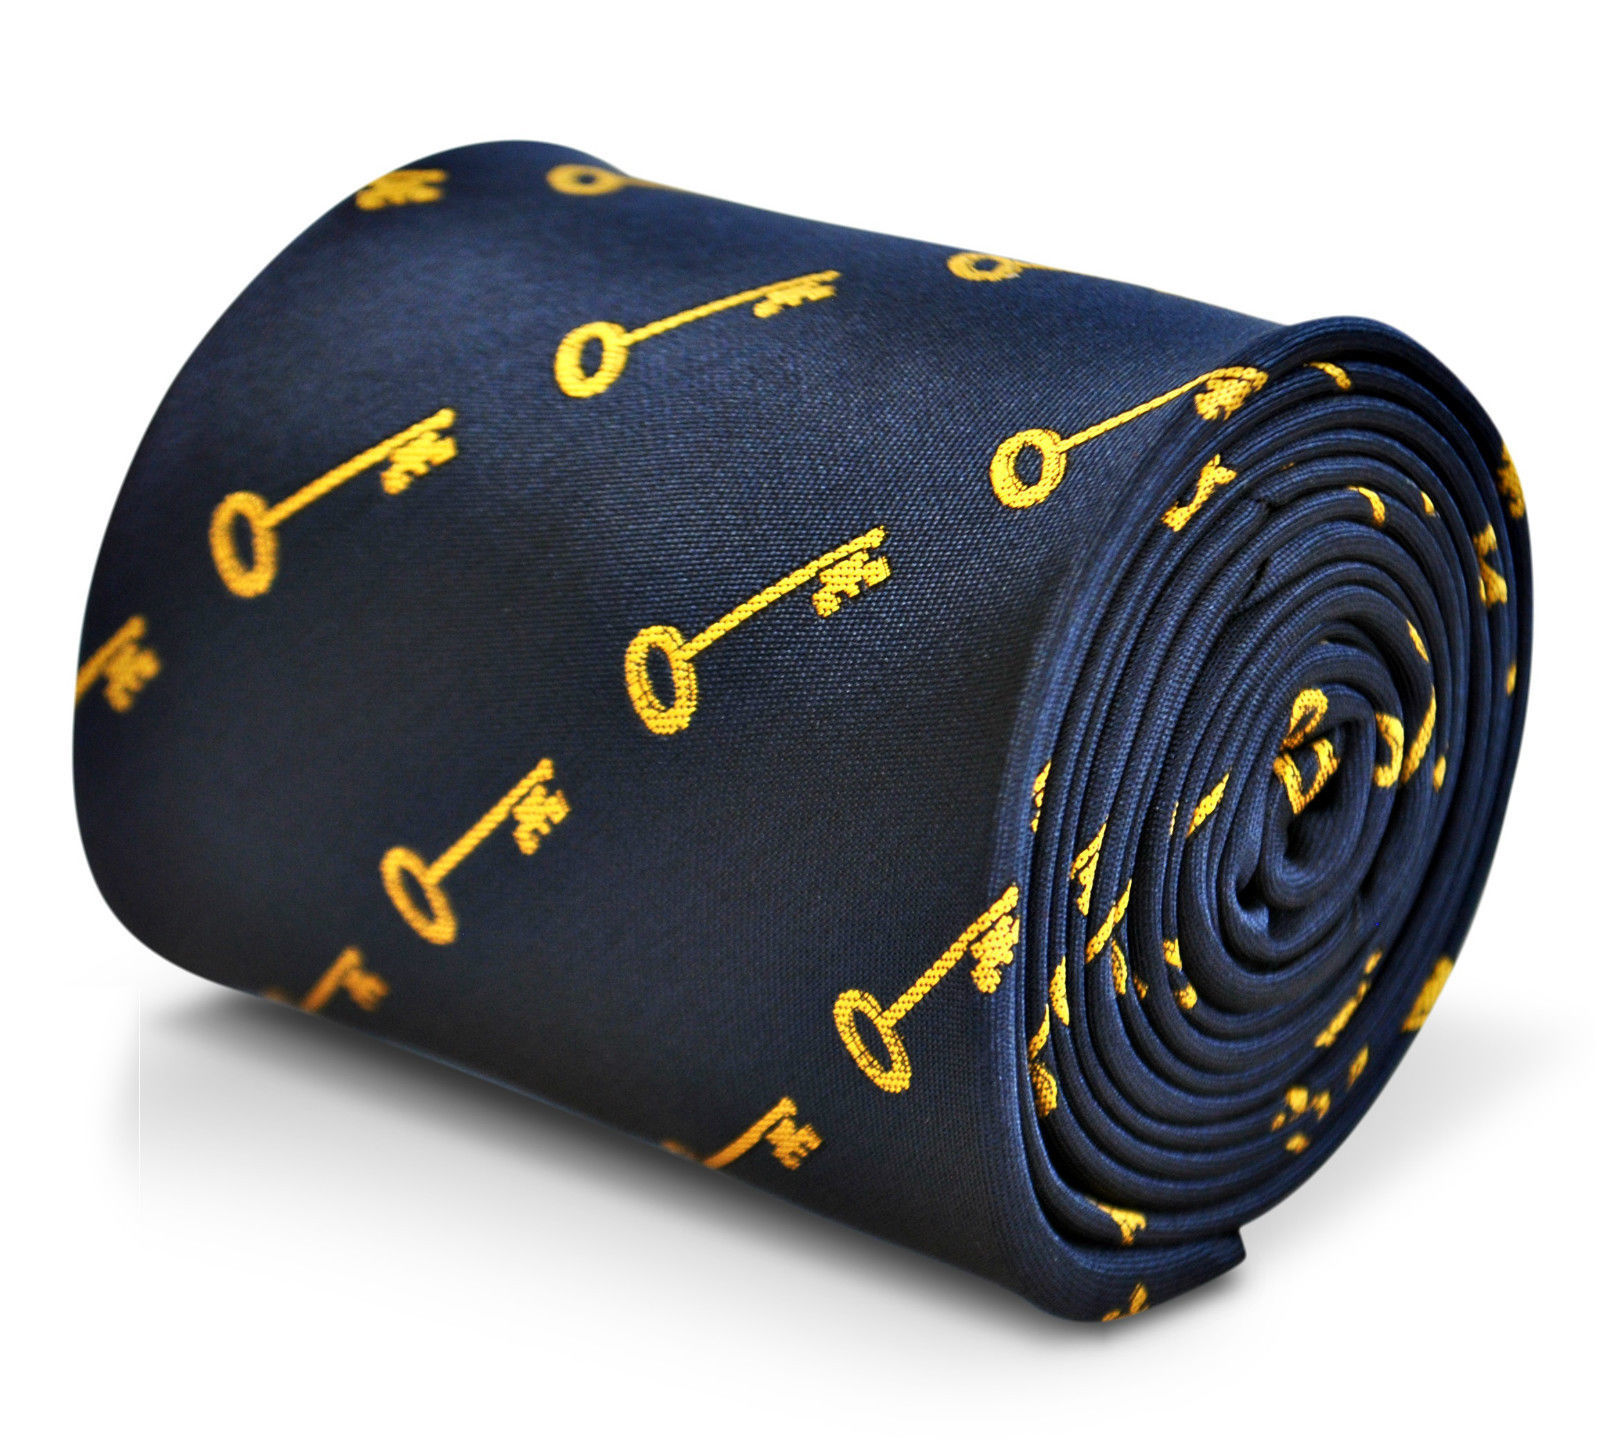 BLU NAVY CRAVATTA da uomo WITH GOLD CHIAVE motivo da Frederick Thomas ft3231